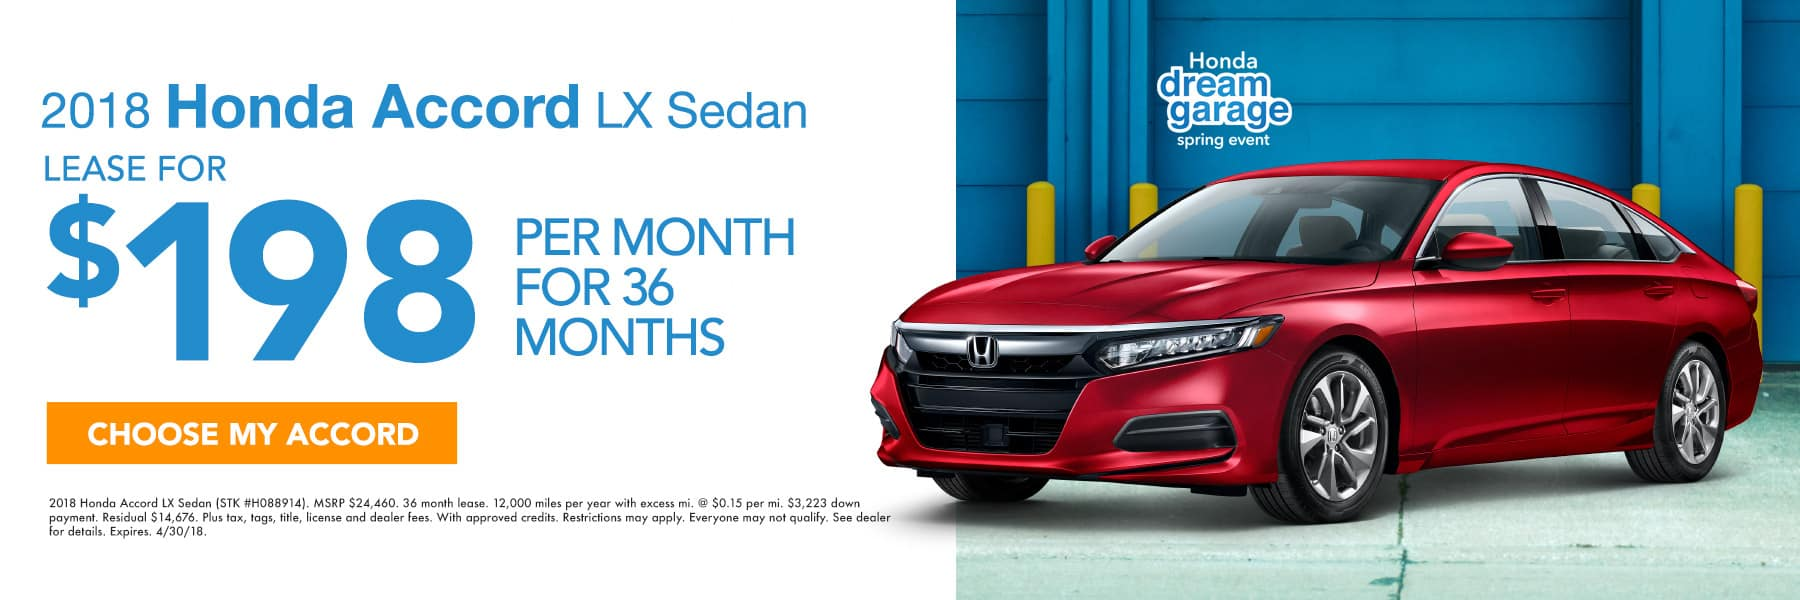 2018 Honda Accord LX Sedan - Lease For $198 Per Month For 36 Months - Choose My Accord - Expires 4/30/2018